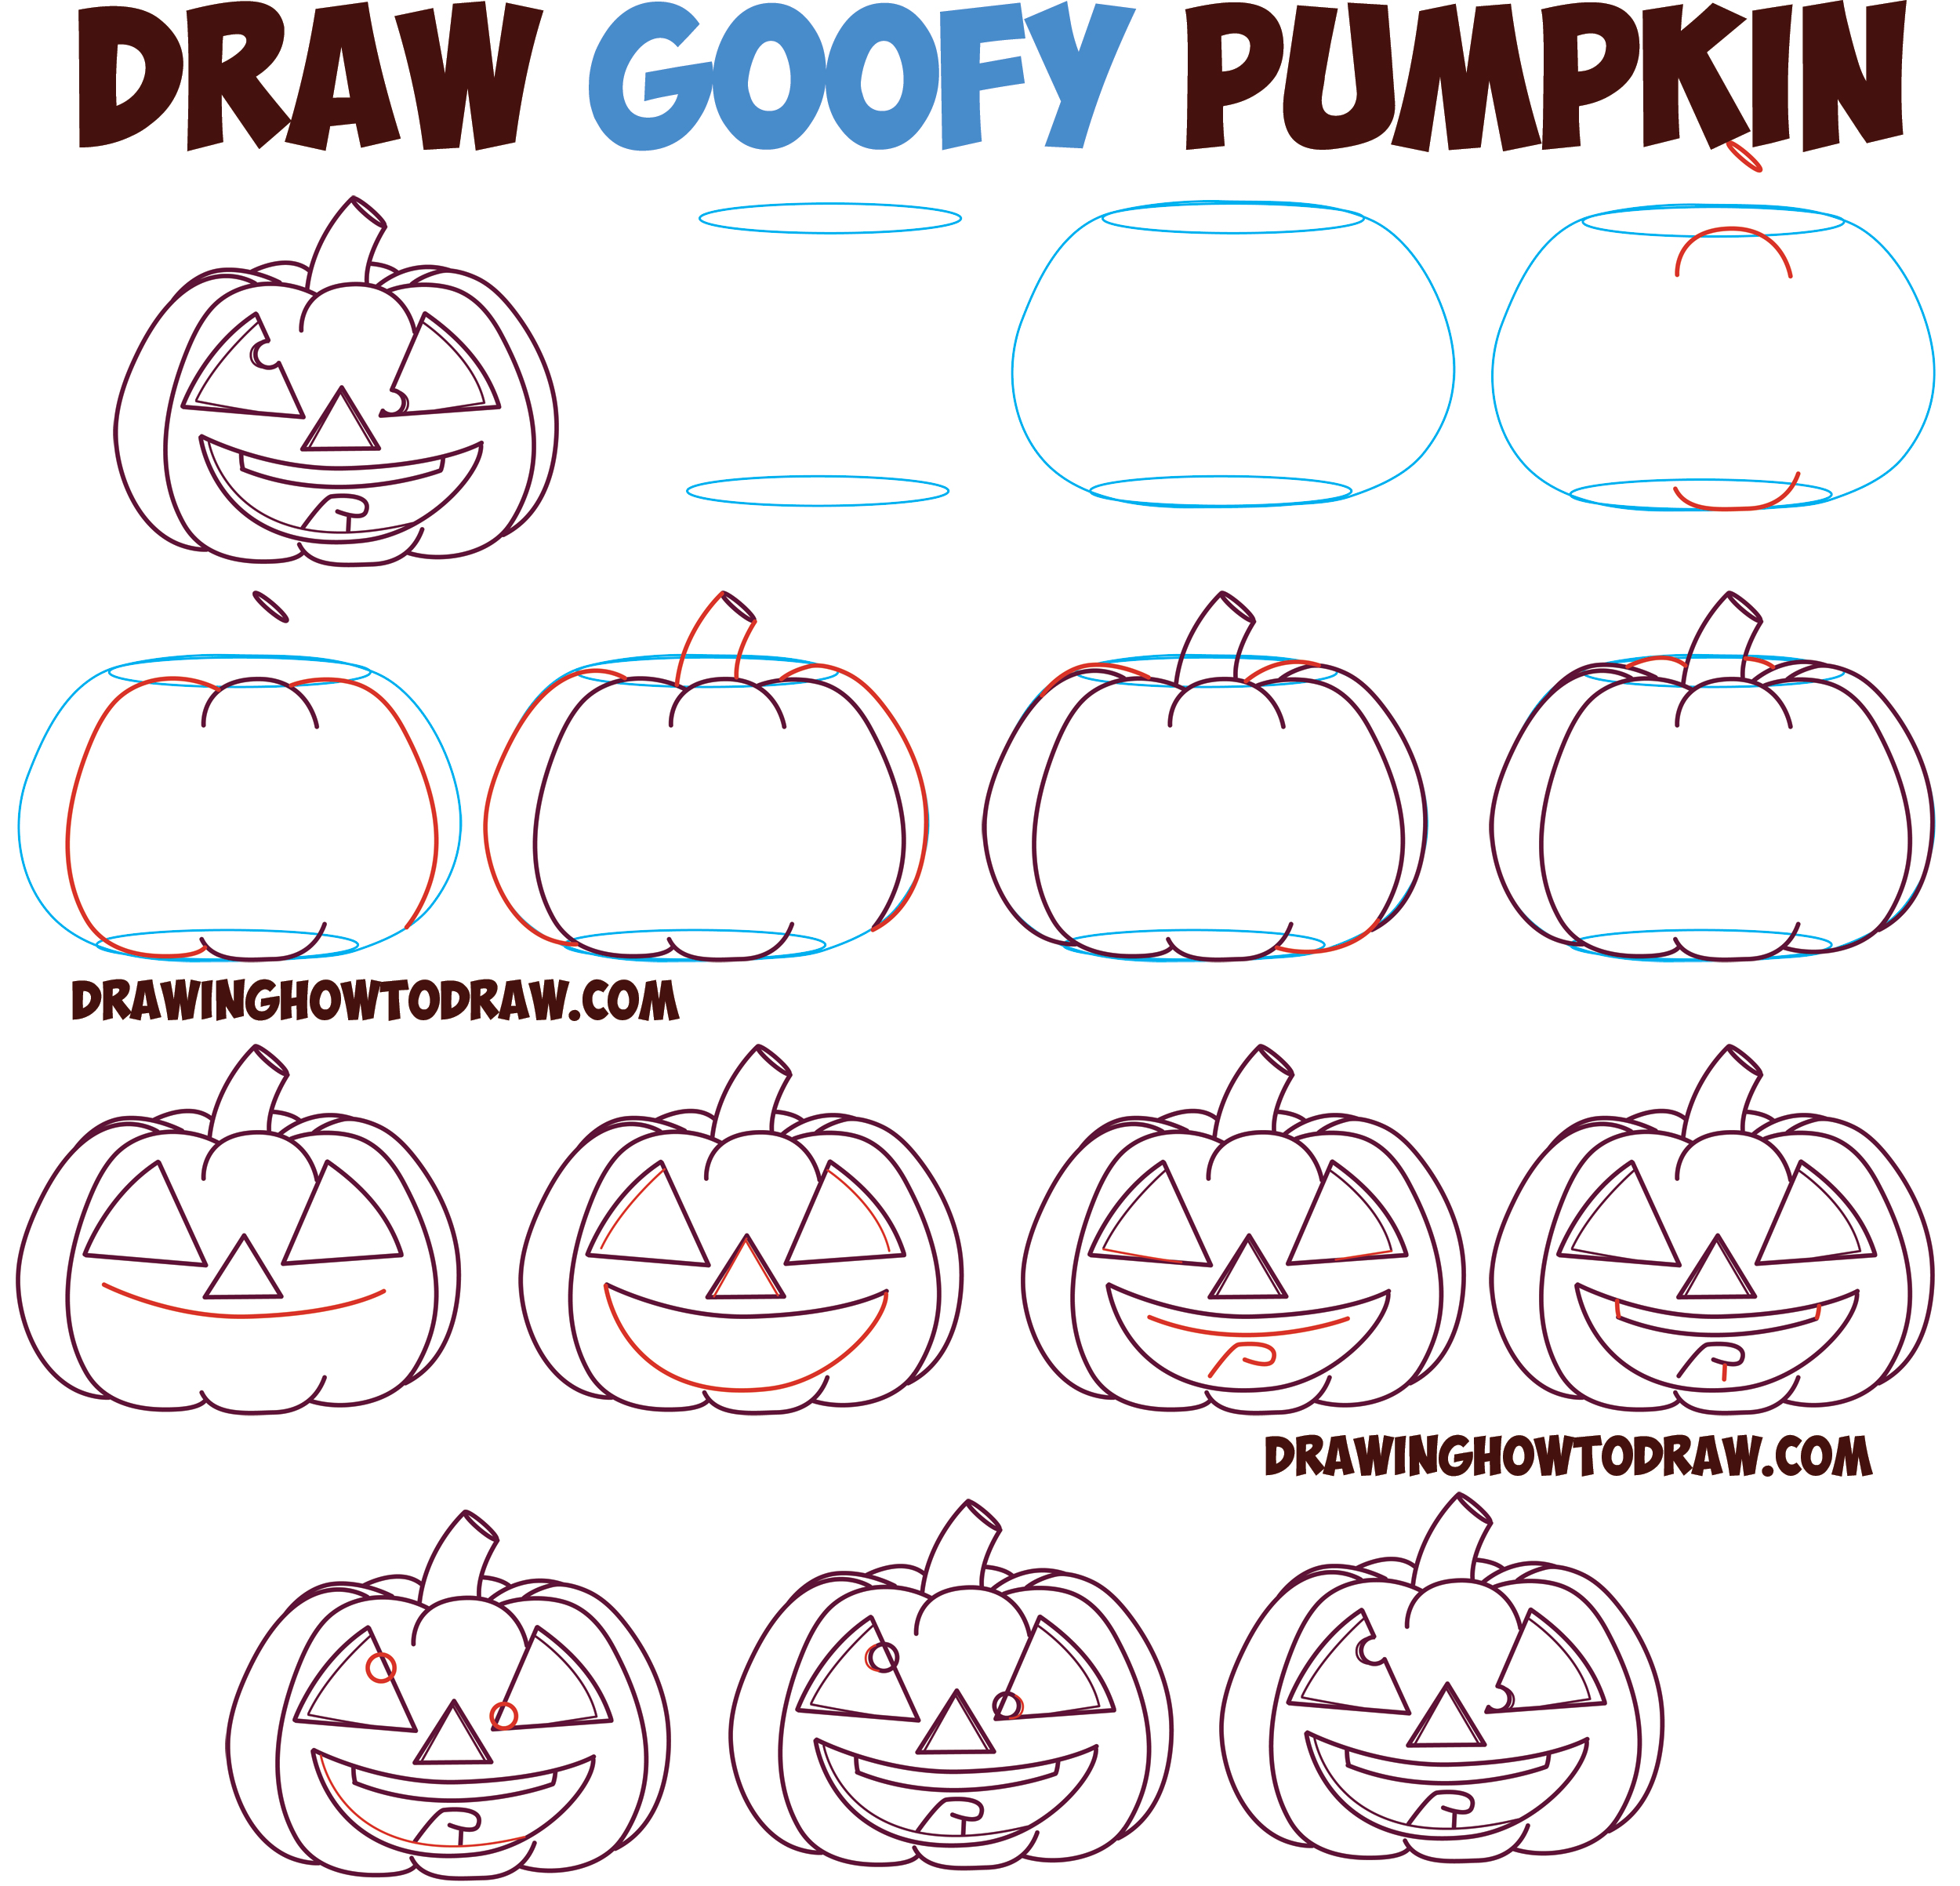 How to Draw Cartoon Pumpkin / Jack O'Lantern : Crazy Googly Eyes with Tongue Out Silly Goofy Pumpkin